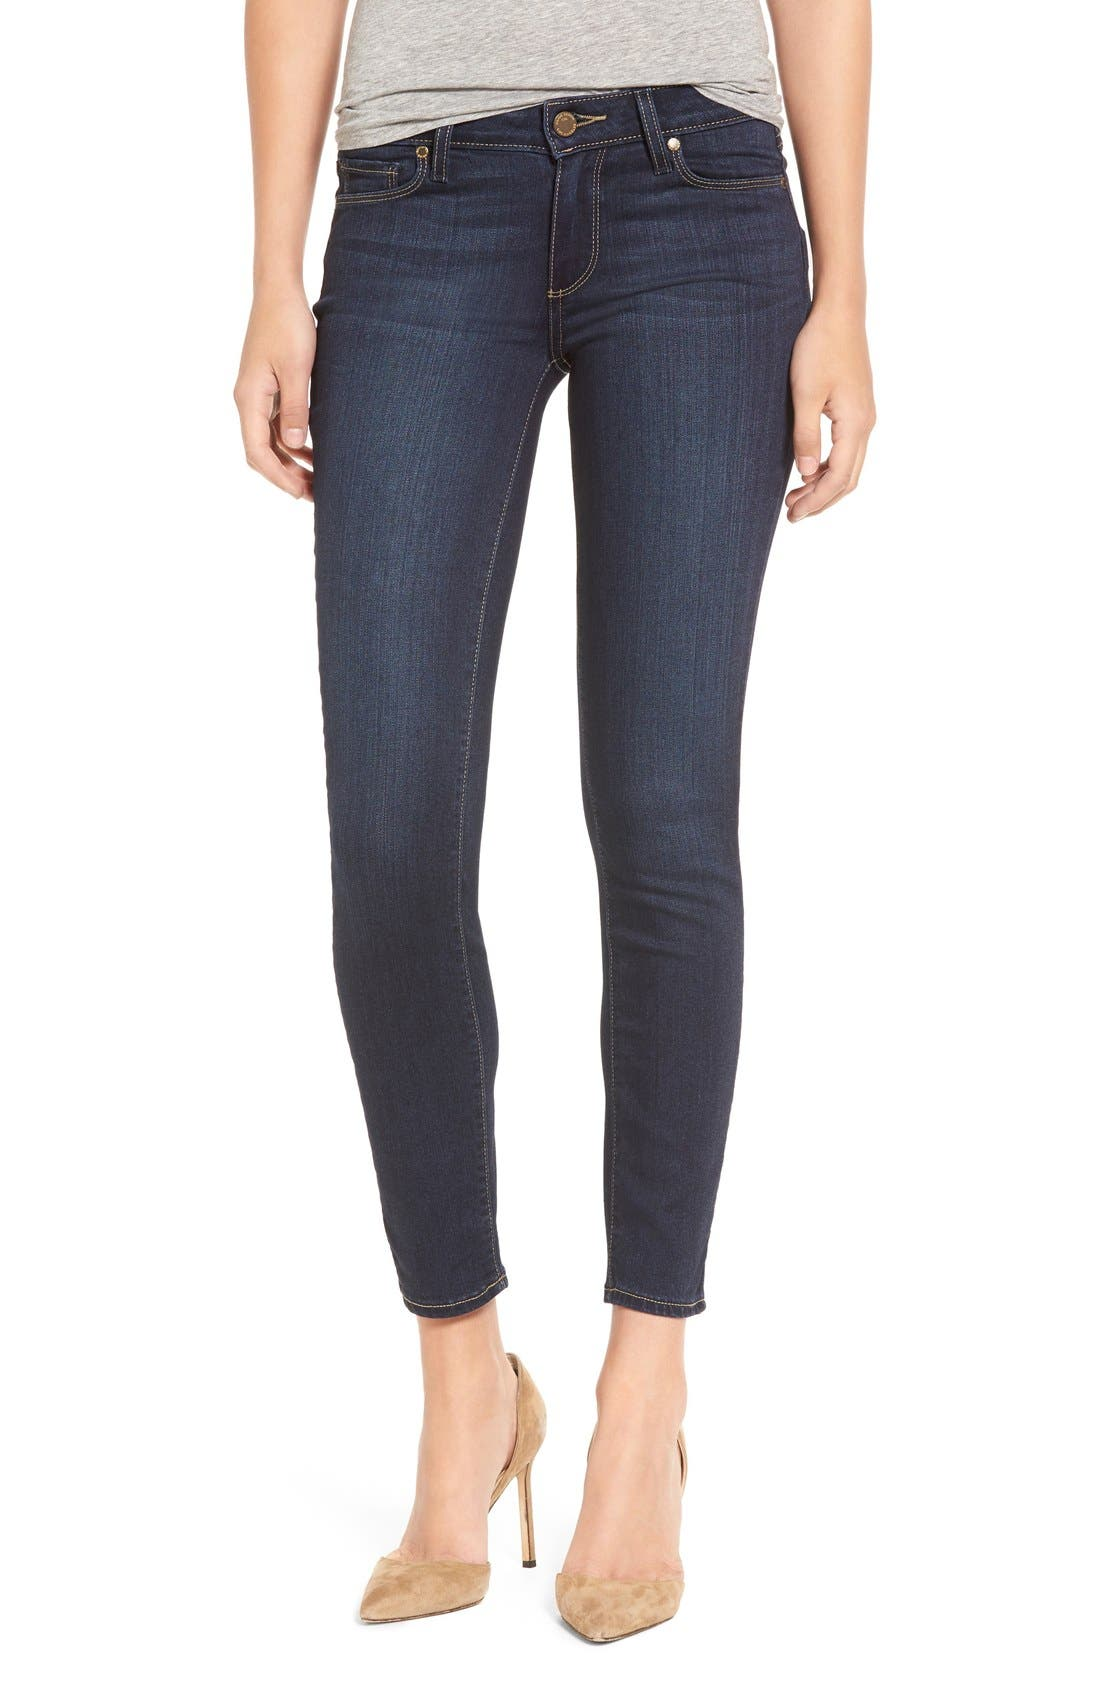 Alternate Image 1 Selected - PAIGE 'Transcend - Verdugo' Ankle Ultra Skinny Jeans (Hartmann) (Nordstrom Exclusive)